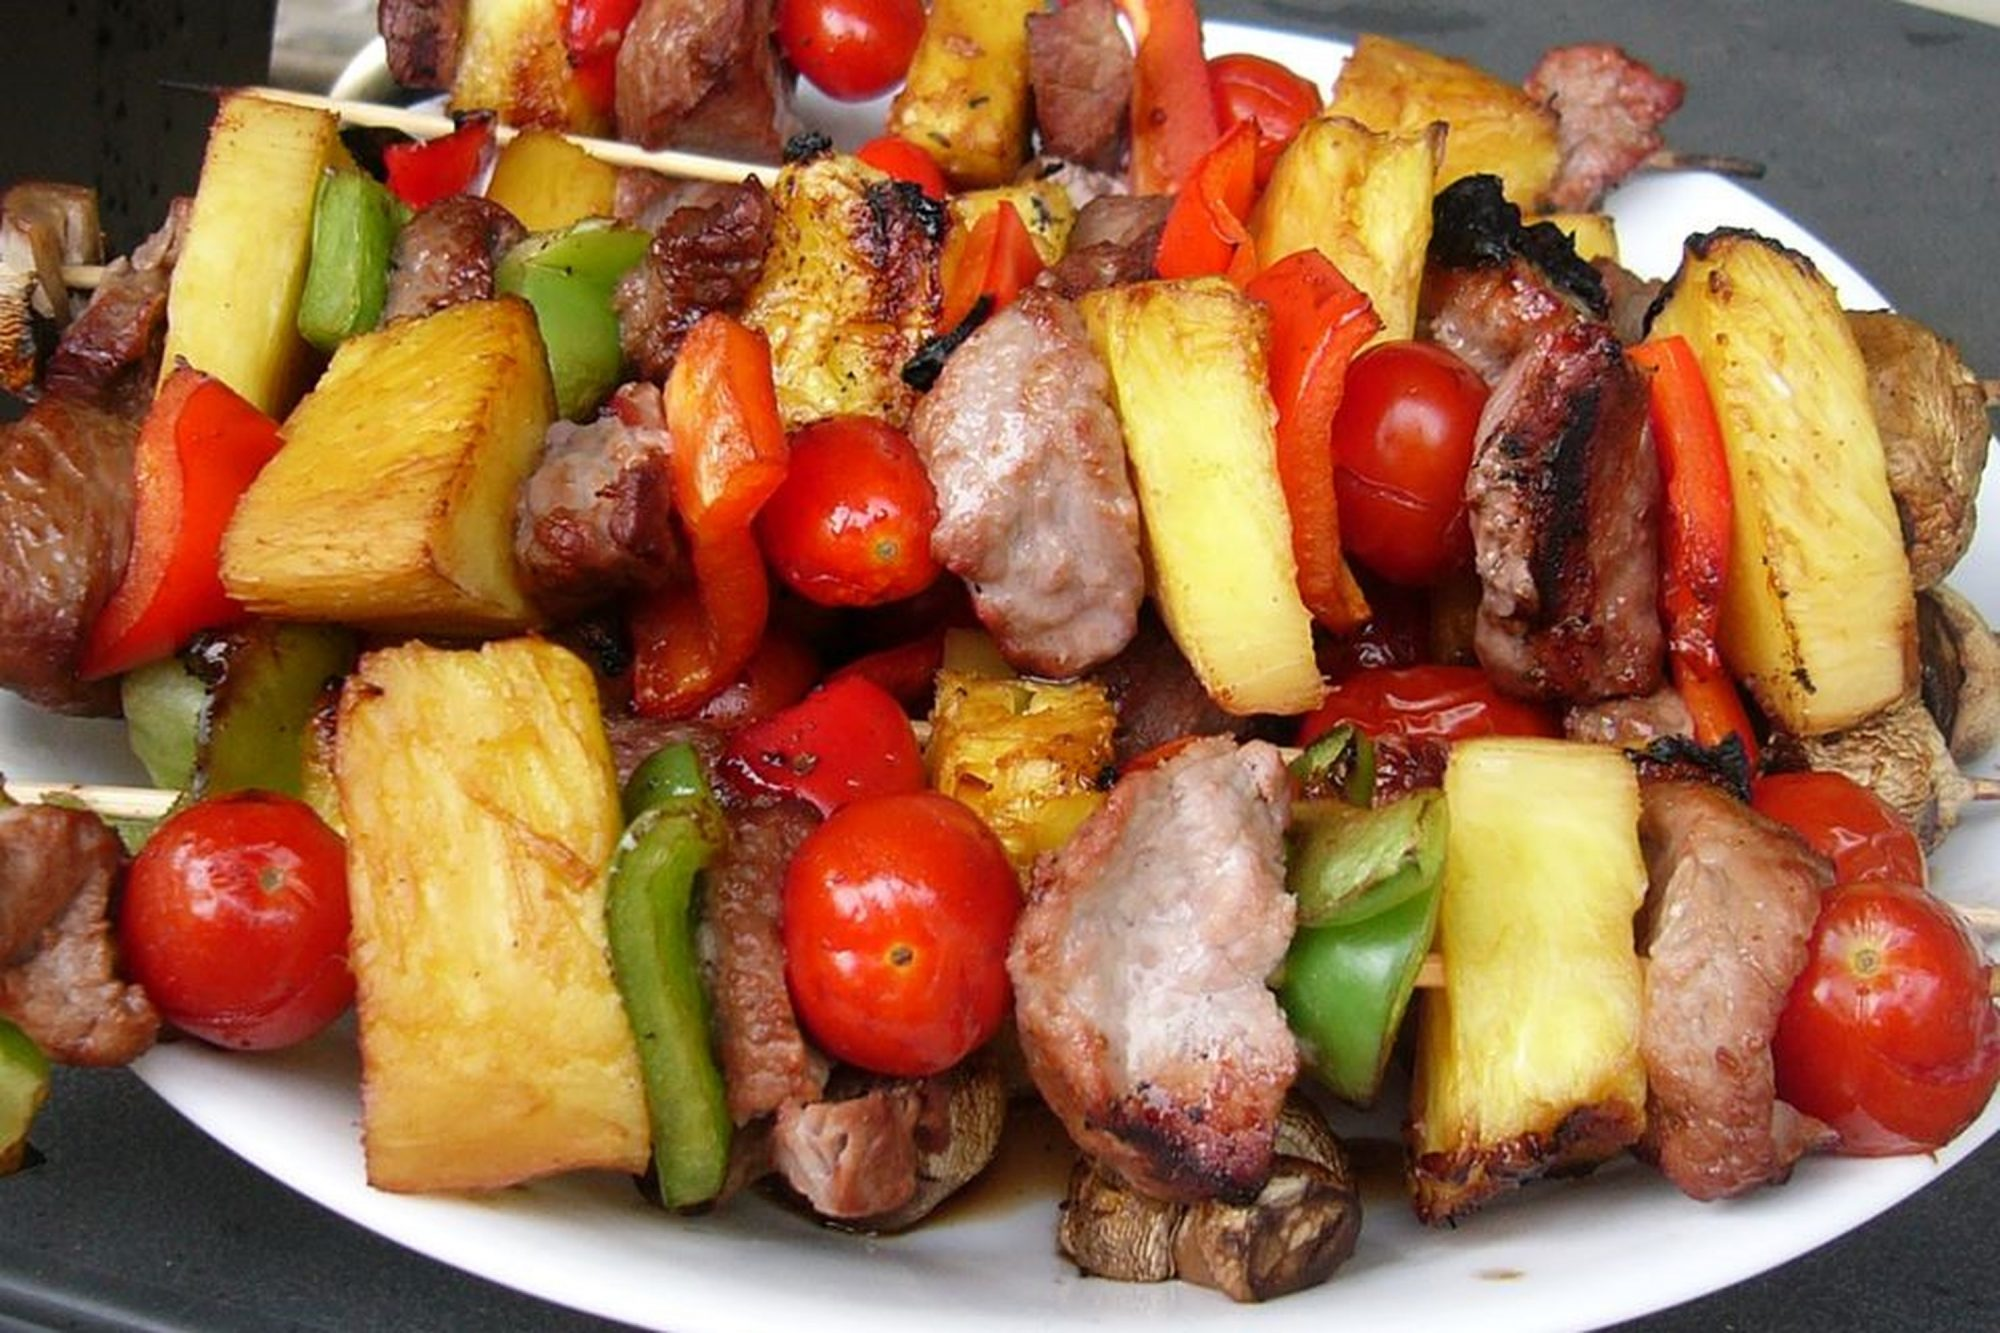 Sensational Sirloin Kabobs with colorful vegetables